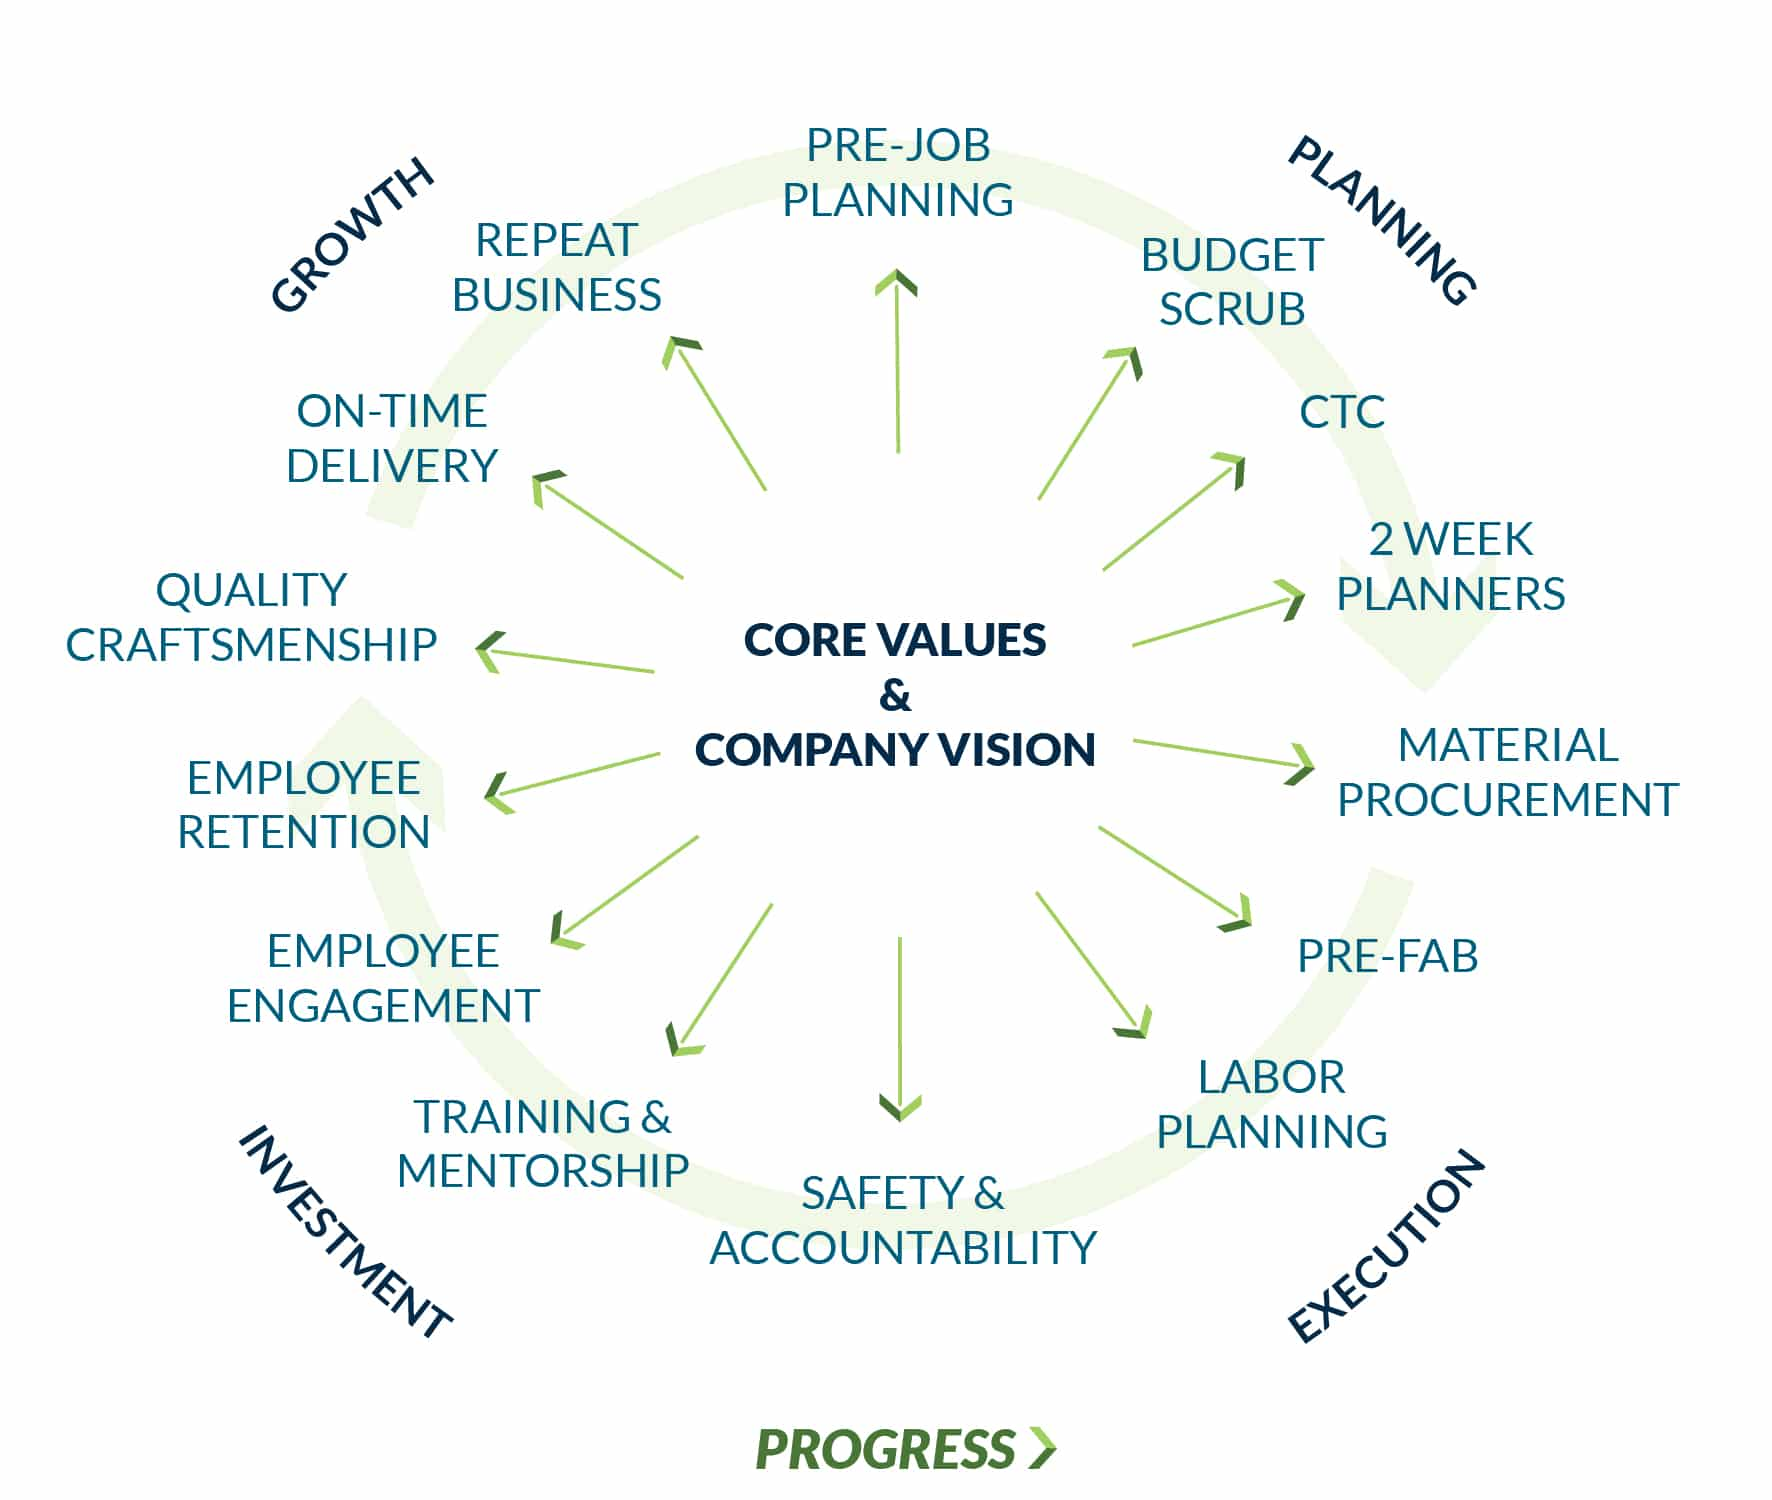 Core Values & Company Vision